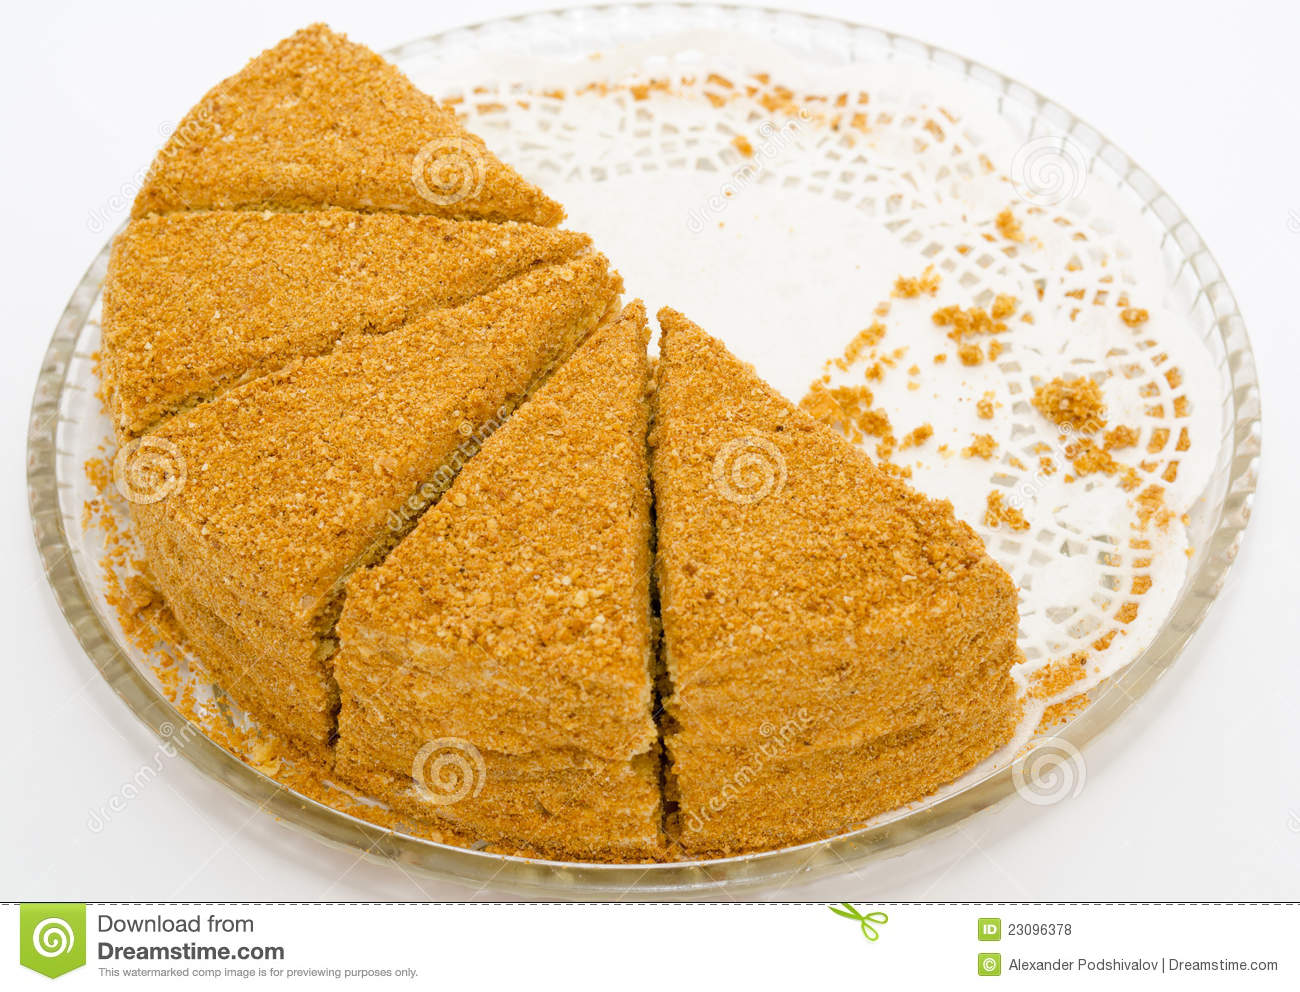 Clipart Of Honey Cake : Honey Cake Royalty Free Stock Photos - Image: 23096378